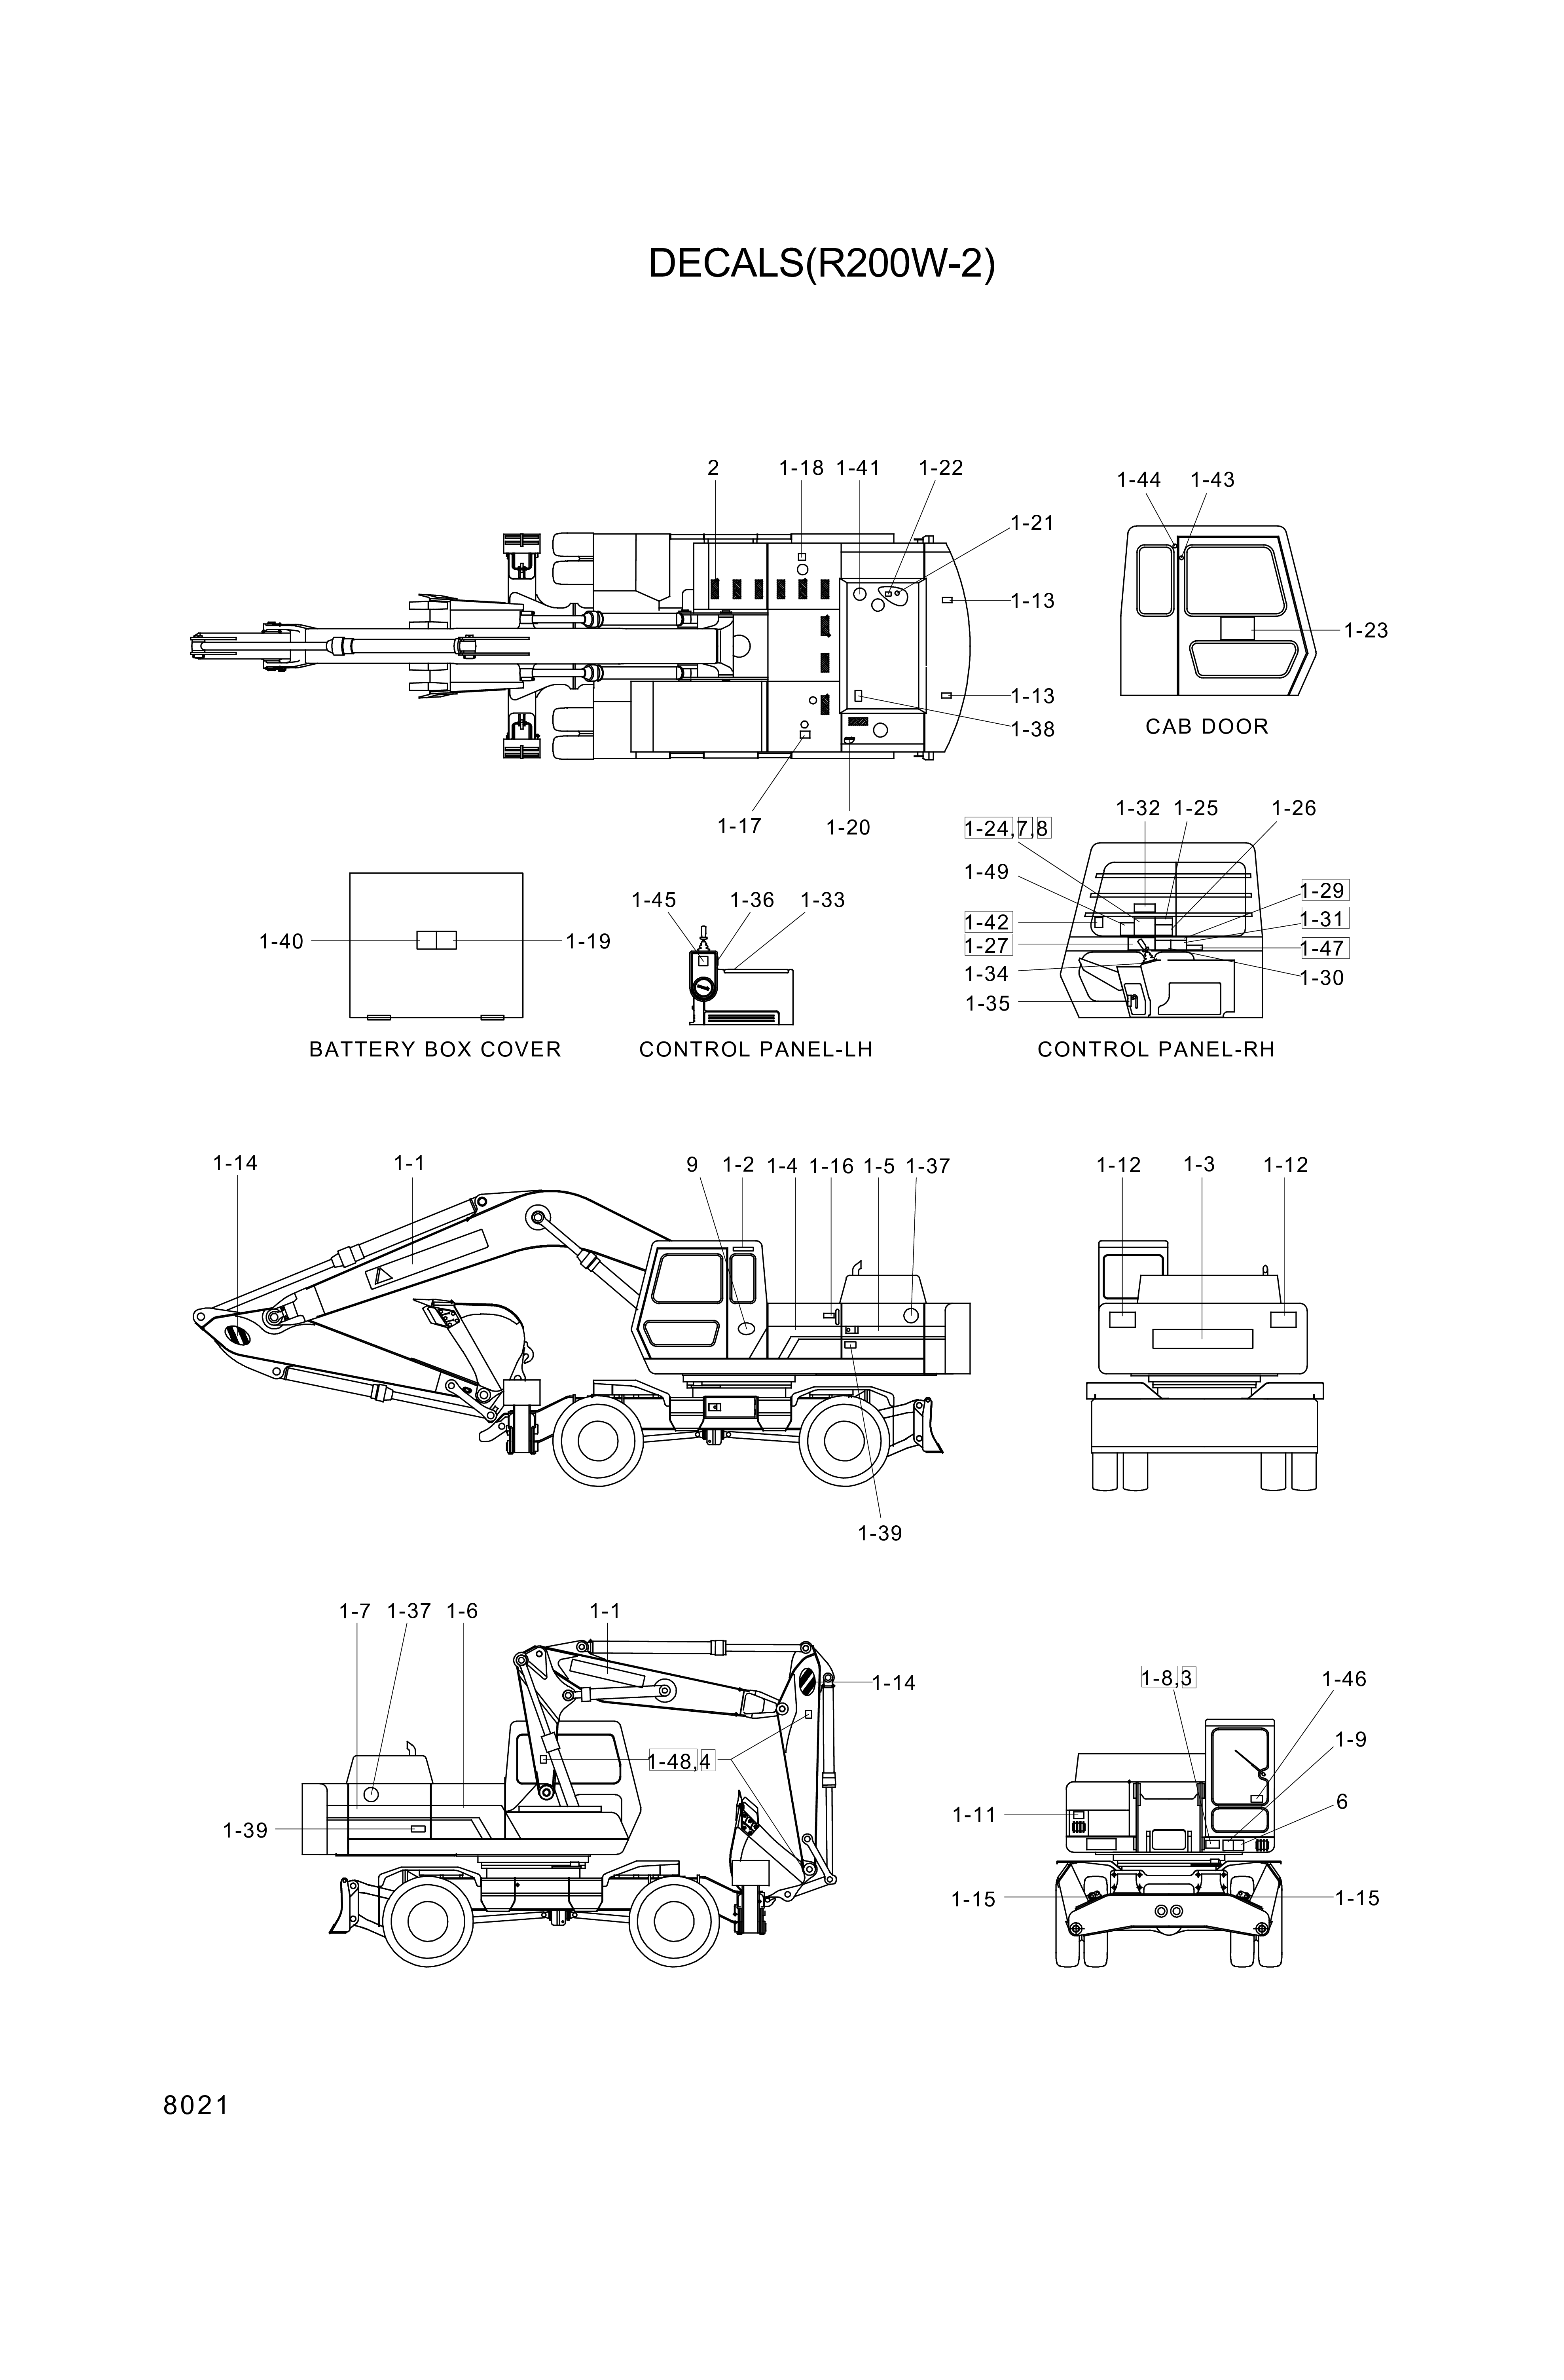 drawing for Hyundai Construction Equipment 93E4-1021 - DECAL-SIDE CHARACTER LH B